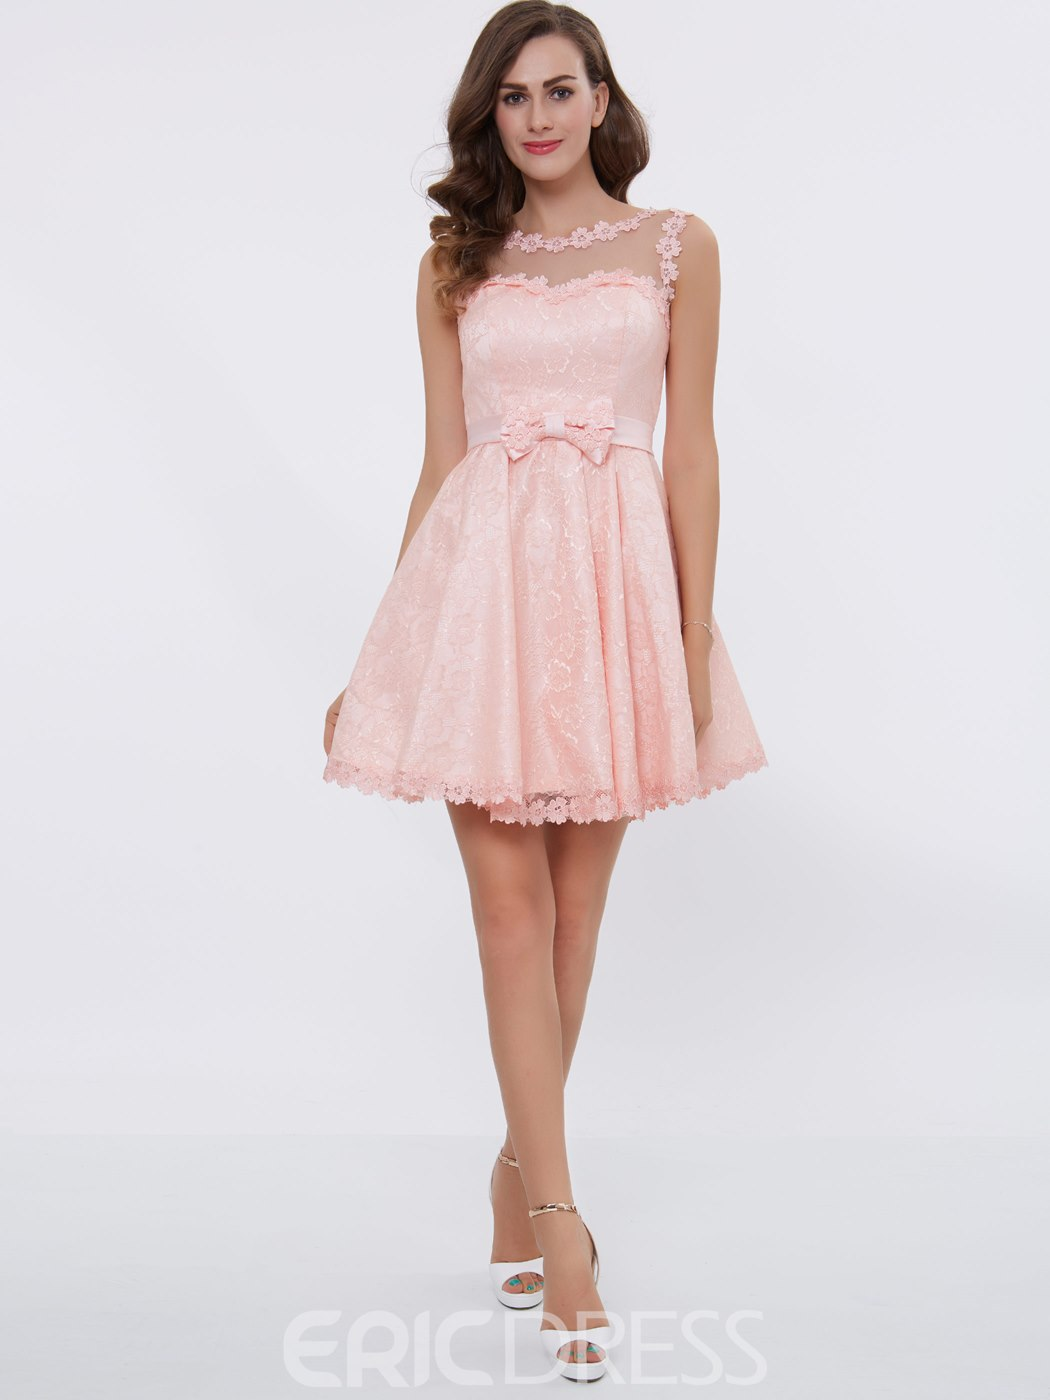 Ericdress Sweet A Line Lace Bowknot Short/Mini Little Party Dress